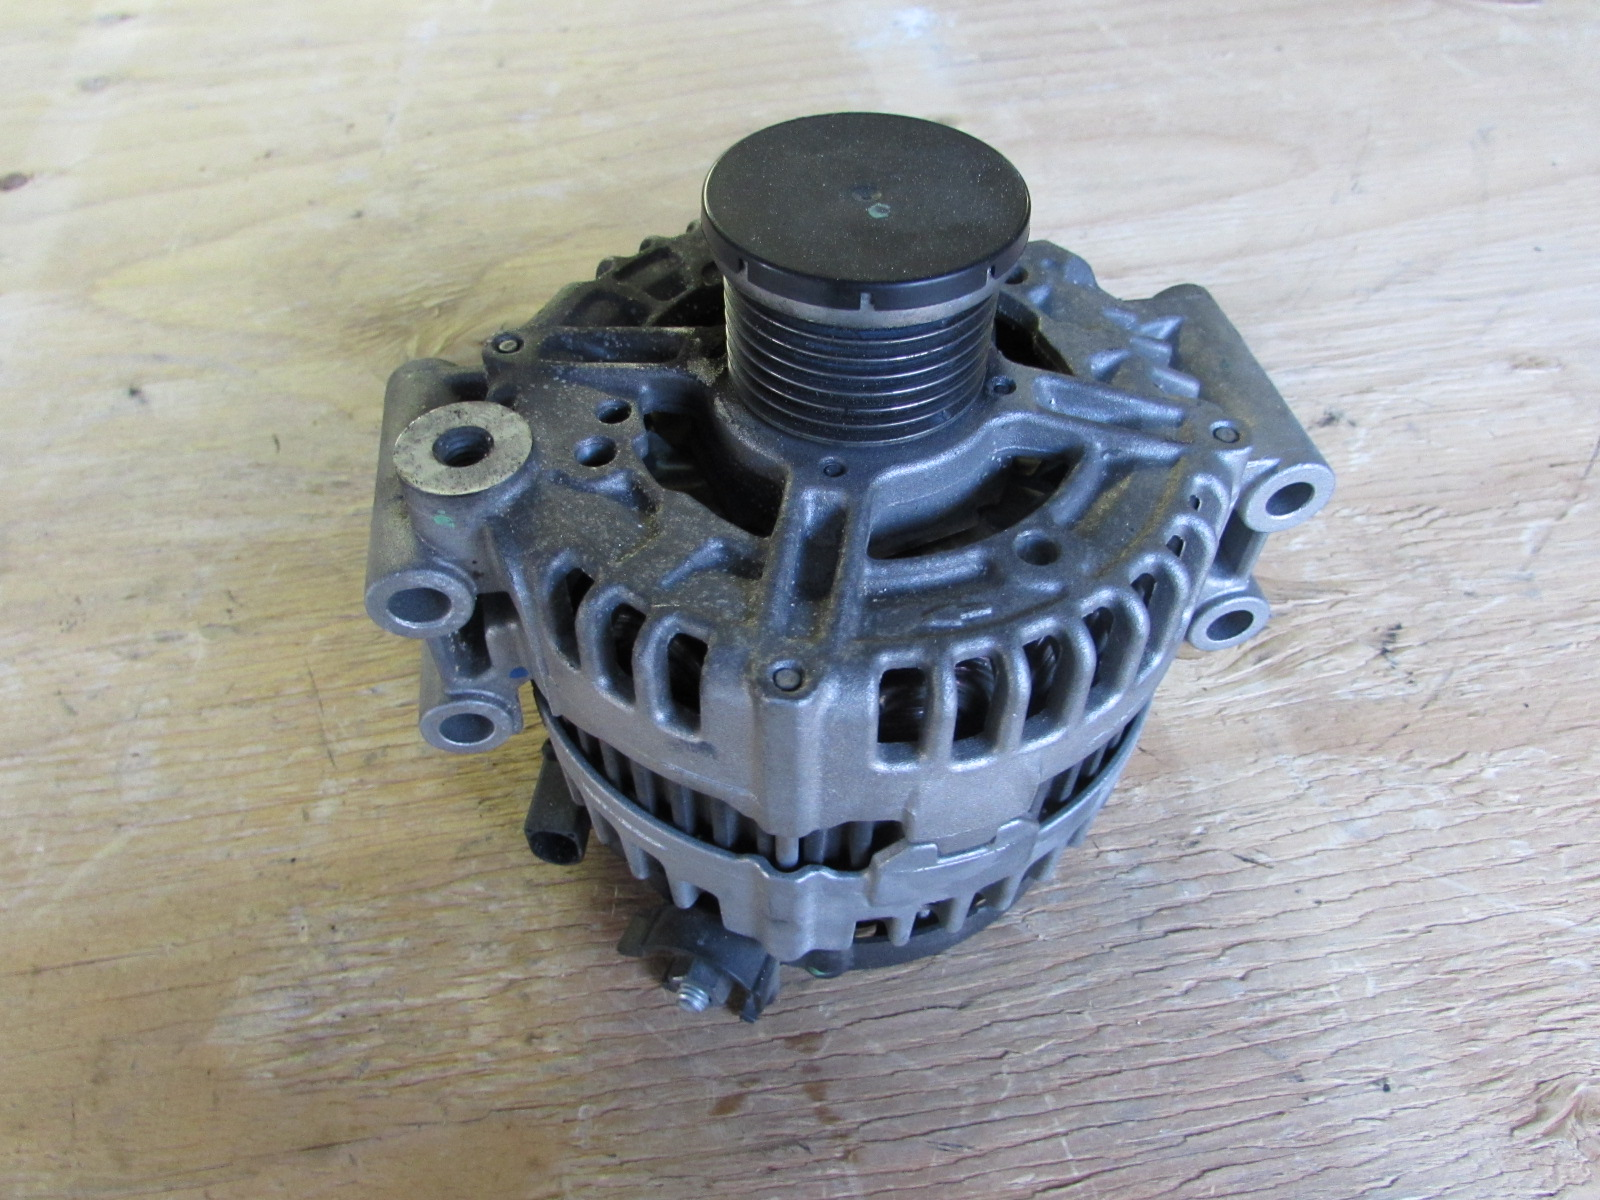 Bmw Alternator Bosch 180 Amp 12317558220 E90 E92 E93 335i 335xi 335is E82 135i E60 535i Hermes Auto Parts